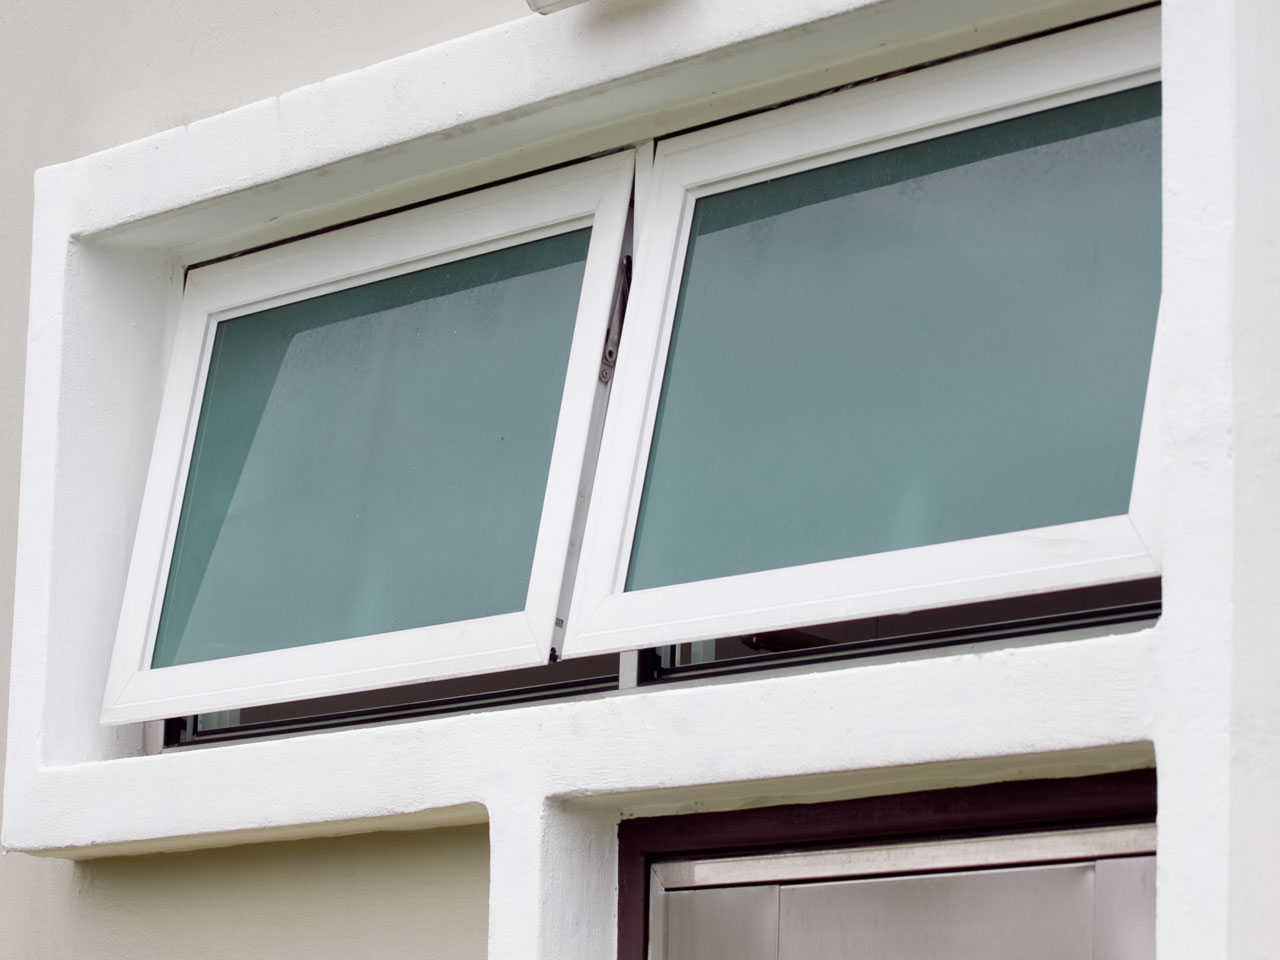 Top hung side hung windows prayosha enterprise ltd for Window side design